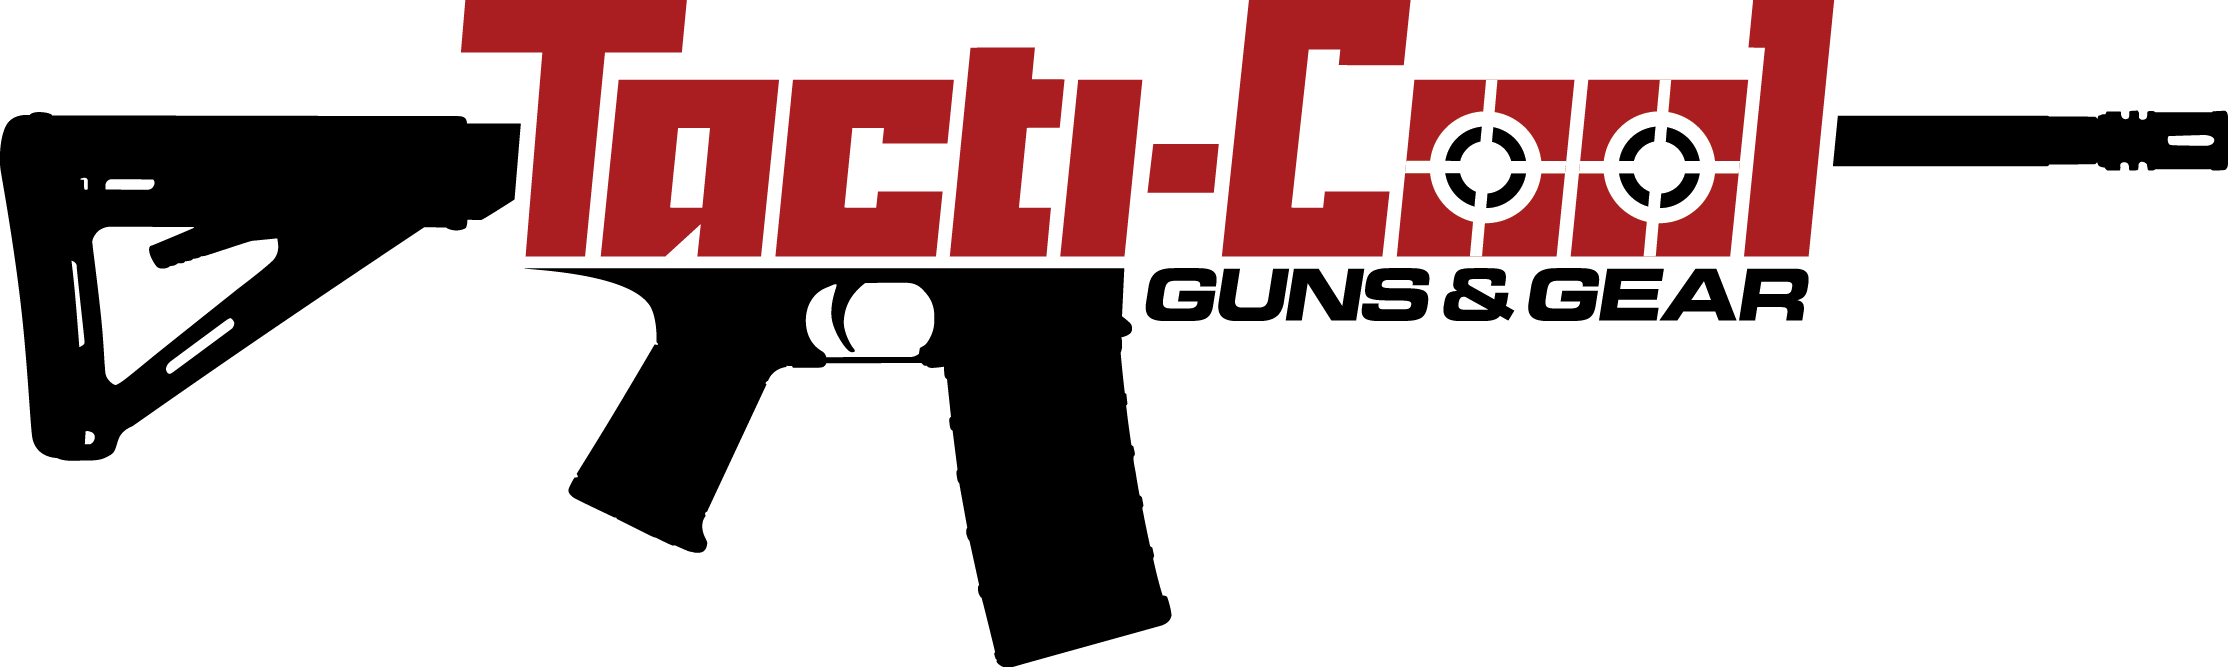 tacticool-logo-only.png